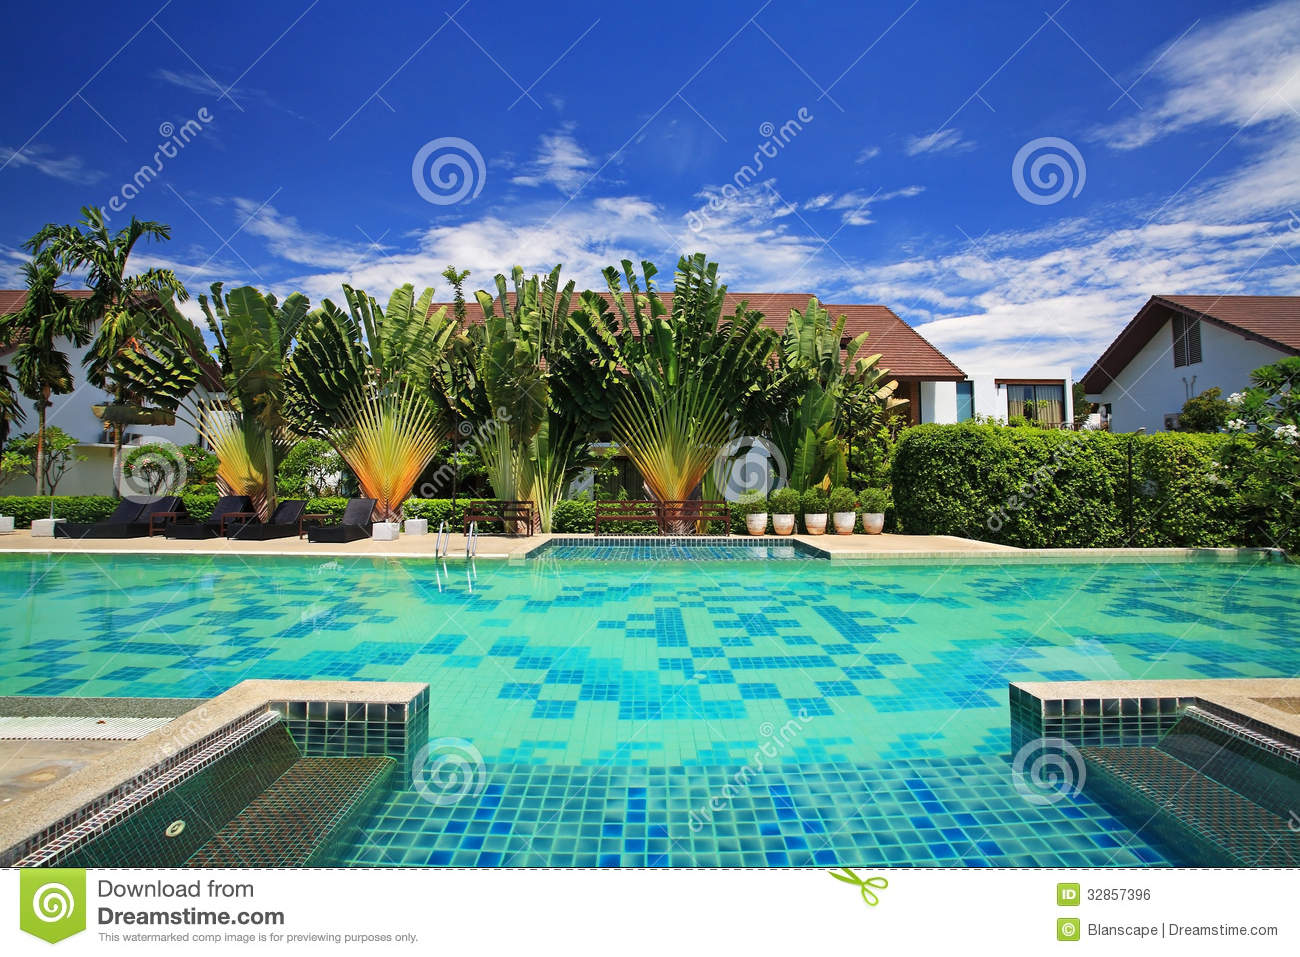 Piscine bleue de luxe dans le jardin tropical photo stock for Piscine destock